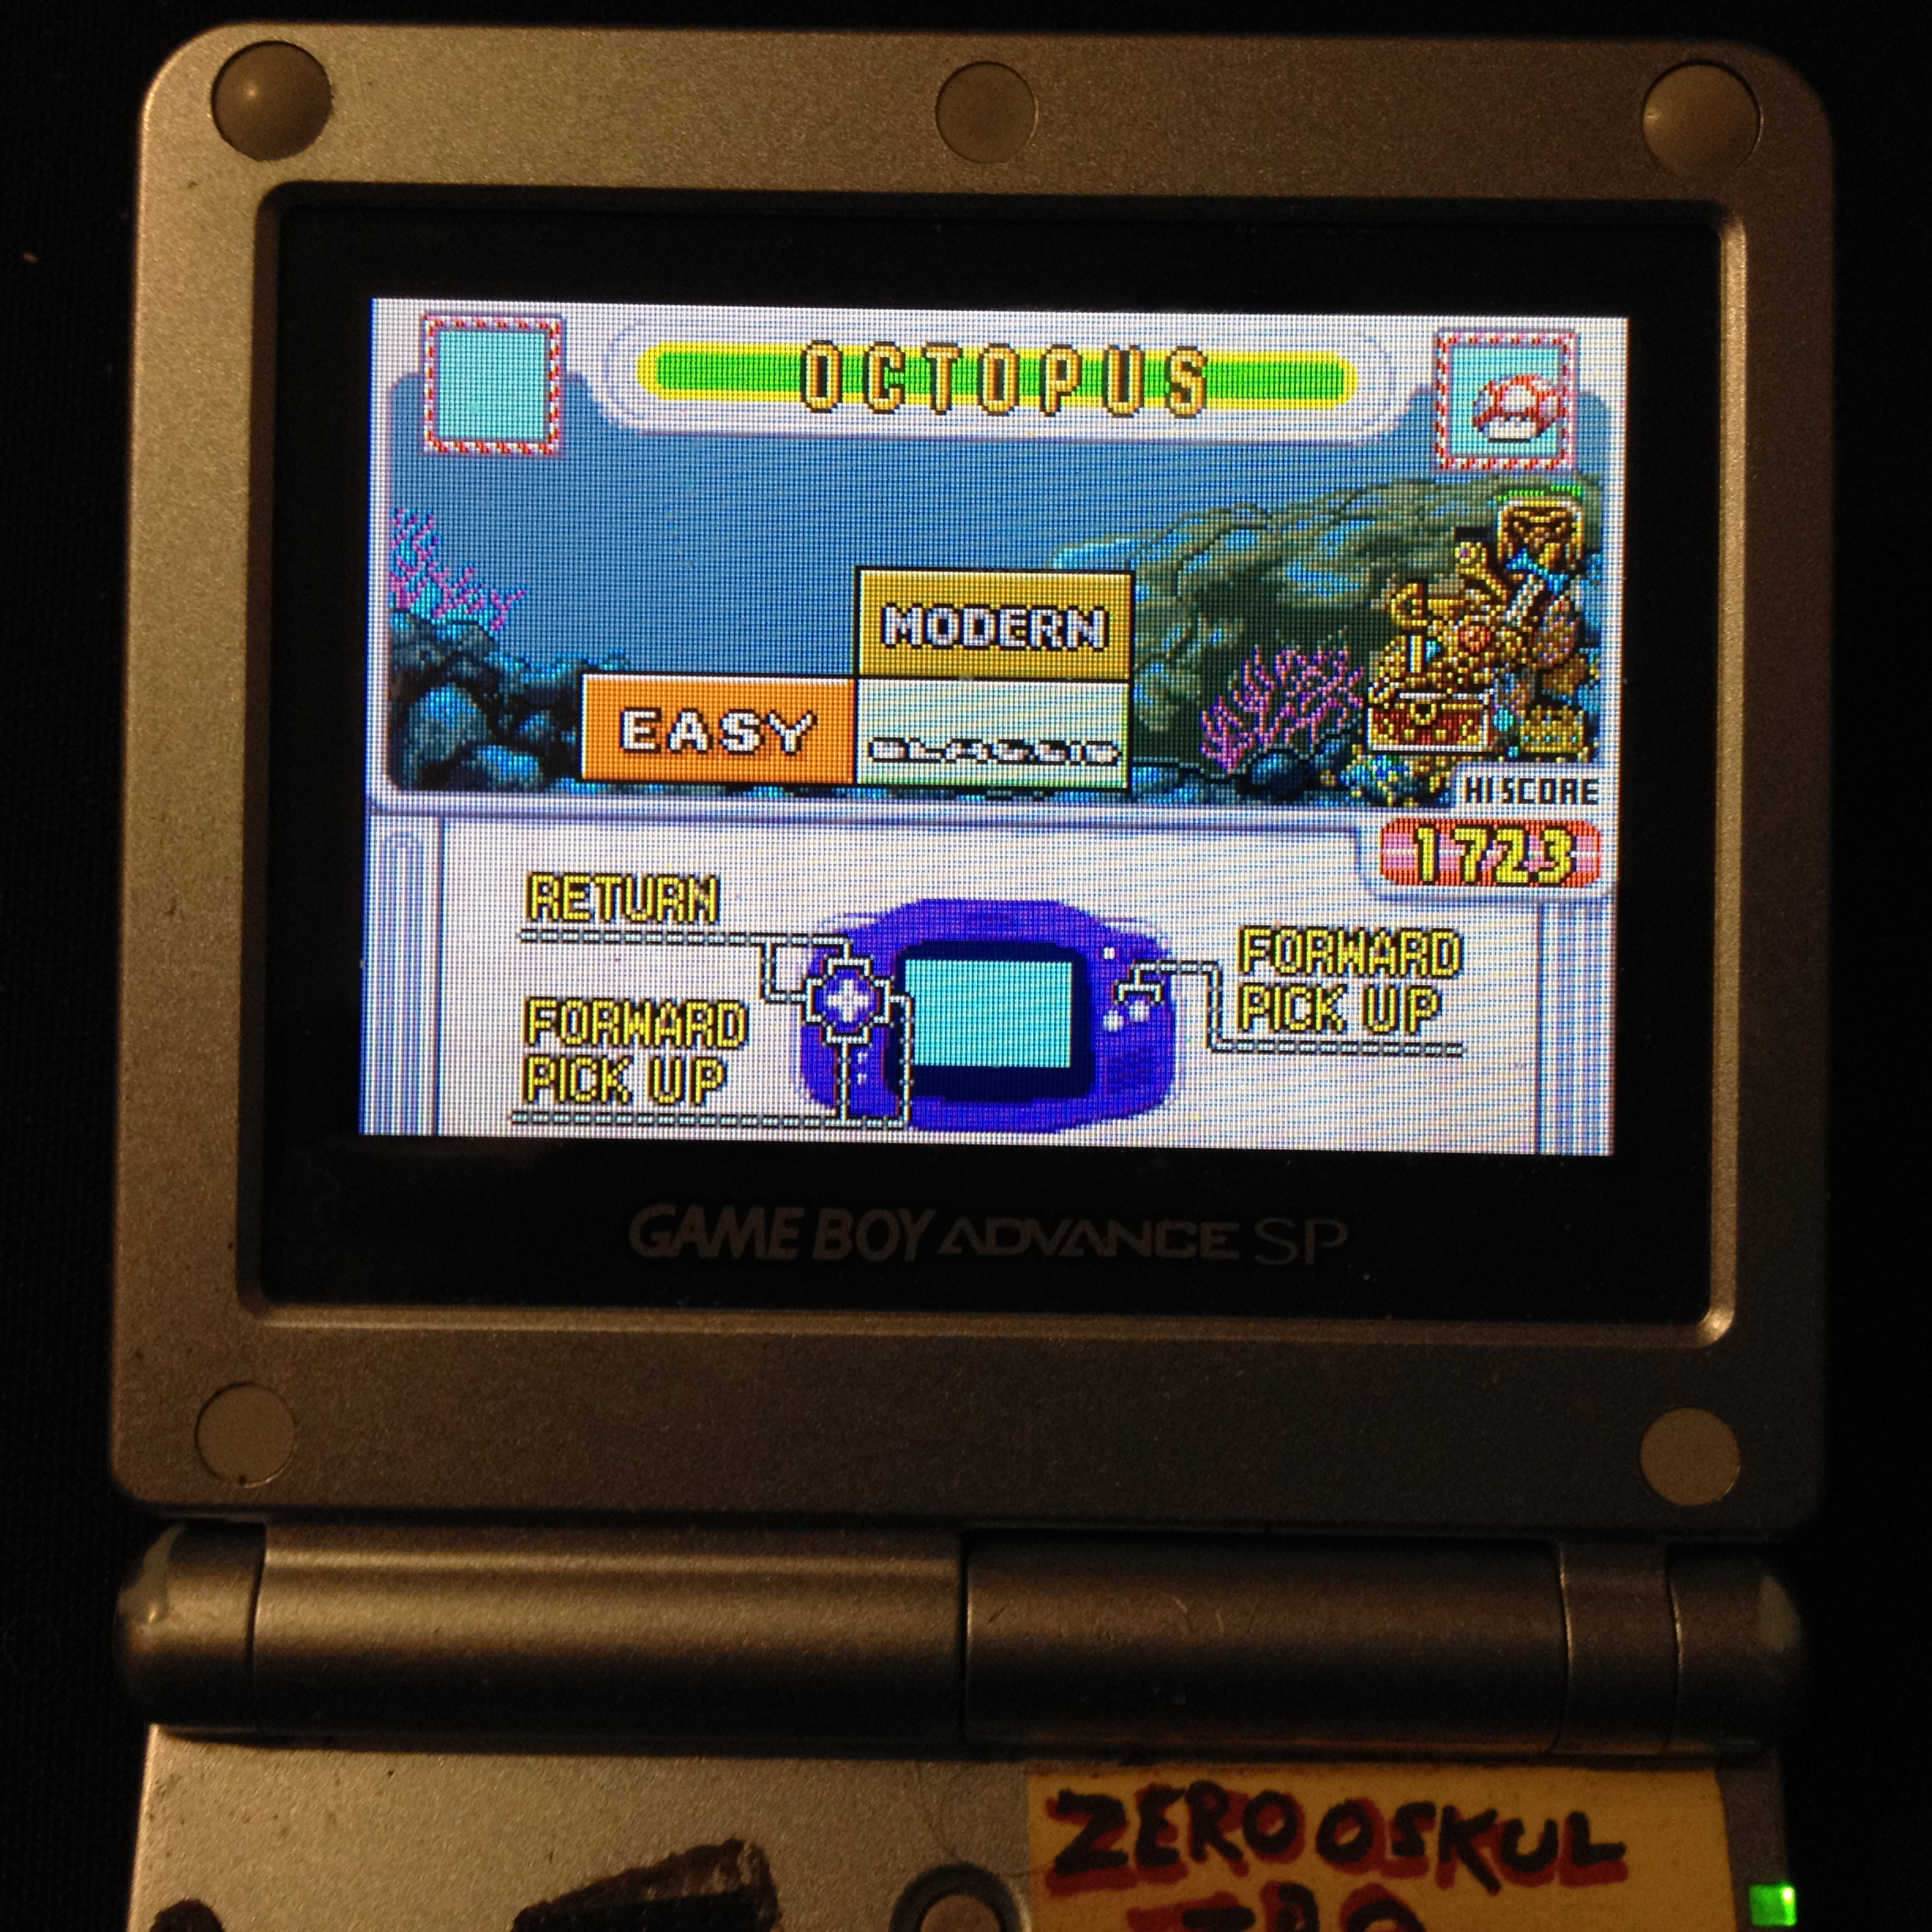 zerooskul: Game & Watch Gallery 4: Octopus [Classic: Easy] (GBA) 1,723 points on 2019-12-09 11:24:39